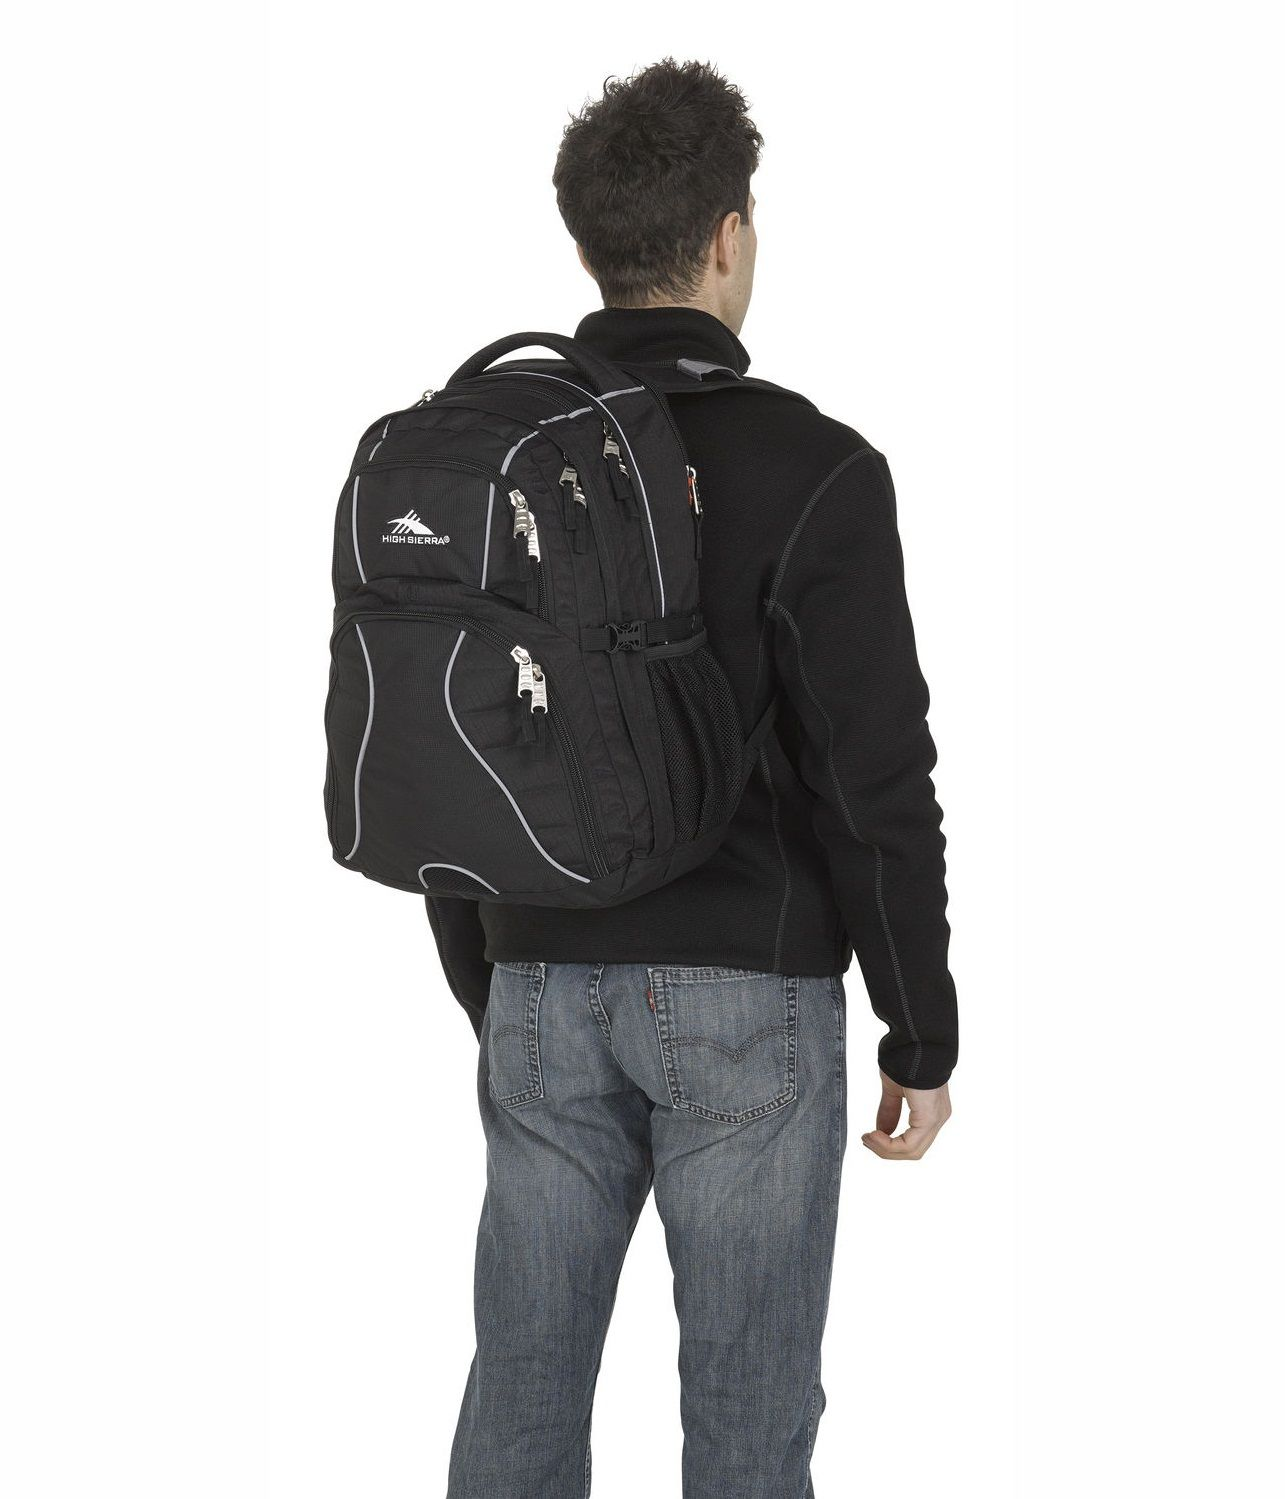 8bb45fd40249 Top 10 Best Backpack Brands to Choose from published in TopTeny magazine  Best Products - Backpacks are getting increasingly popular by the day due  to the ...